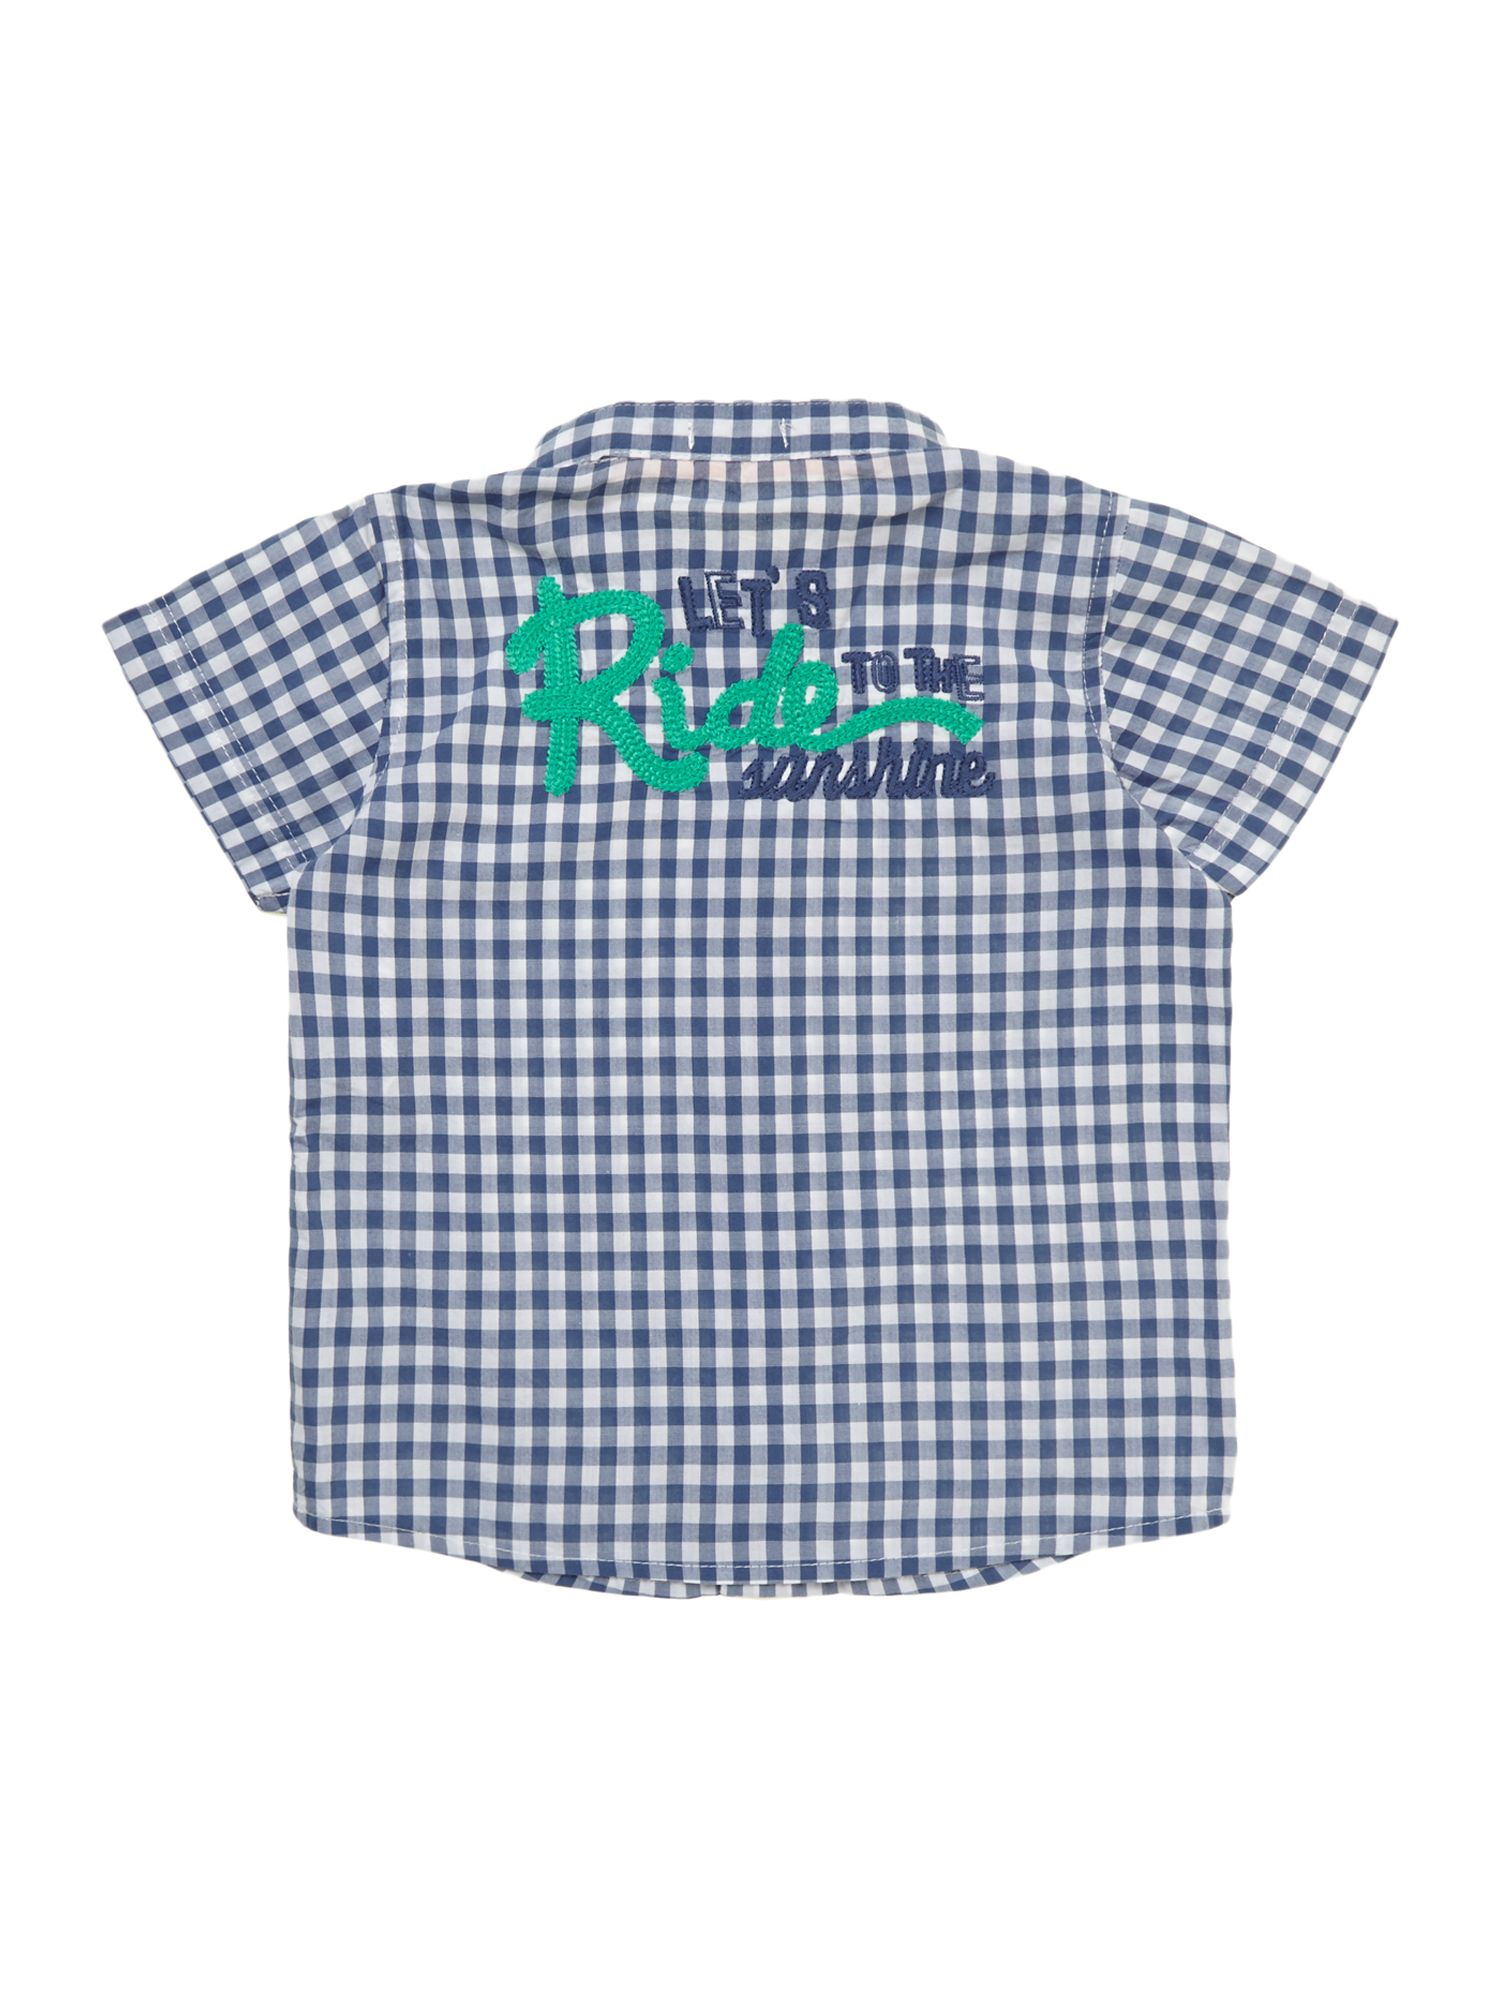 Boys mini check shirt